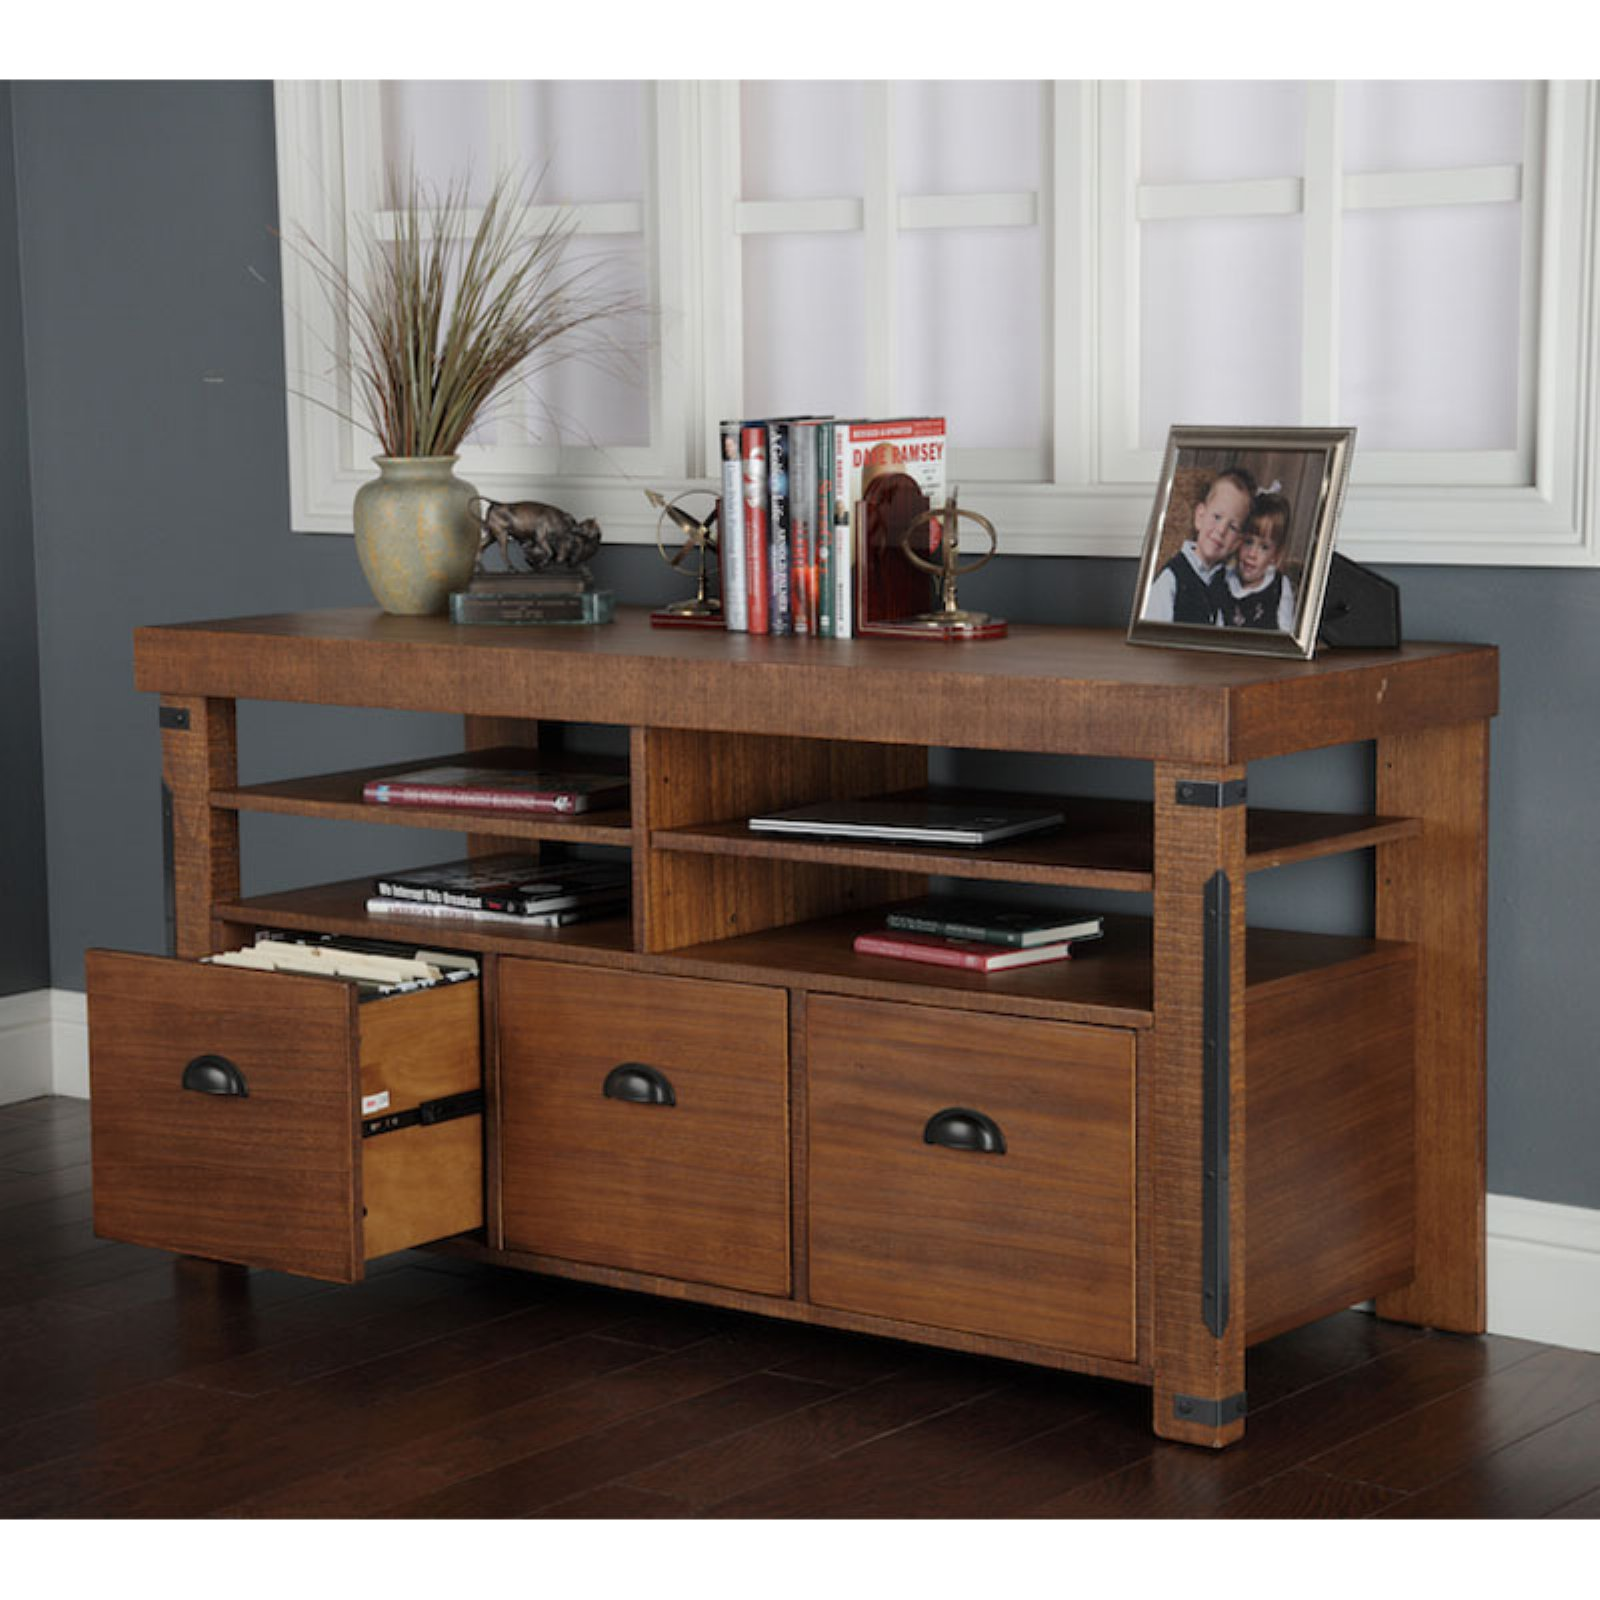 American Furniture Classics Industrial Collection Credenza and Computer Workcenter with File Drawers